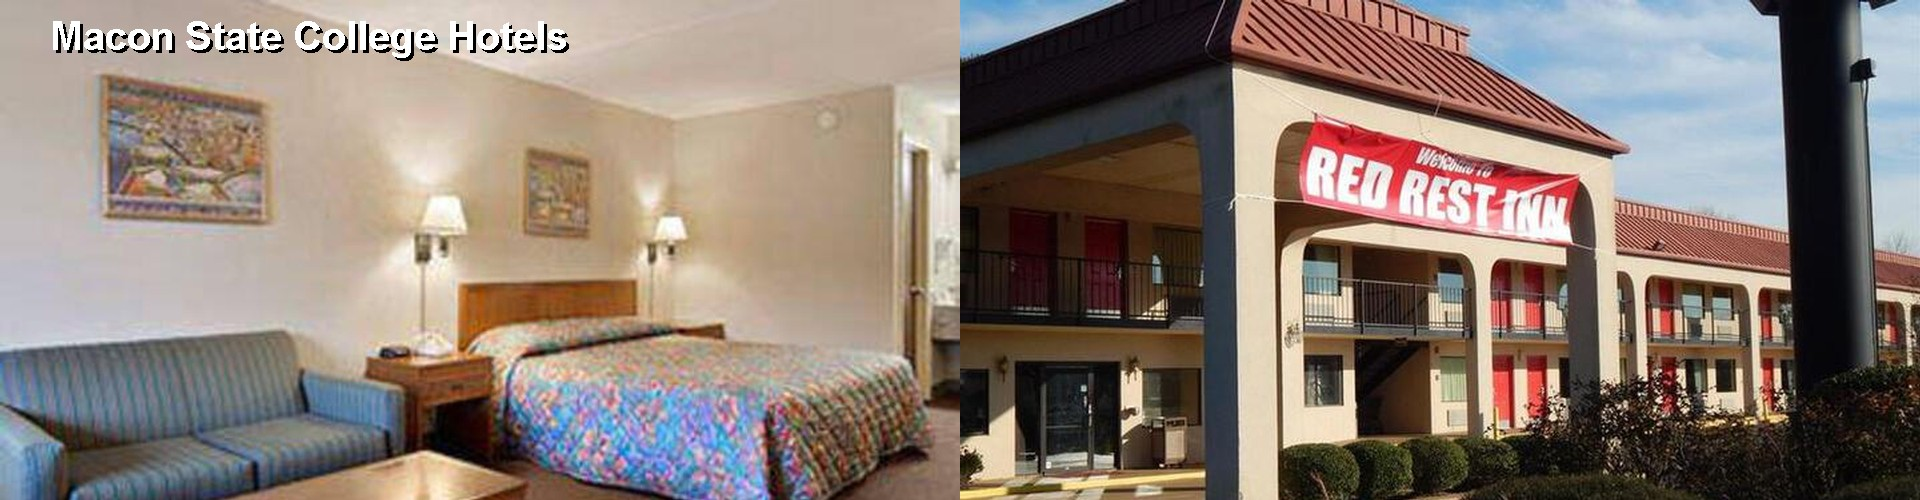 5 Best Hotels near Macon State College